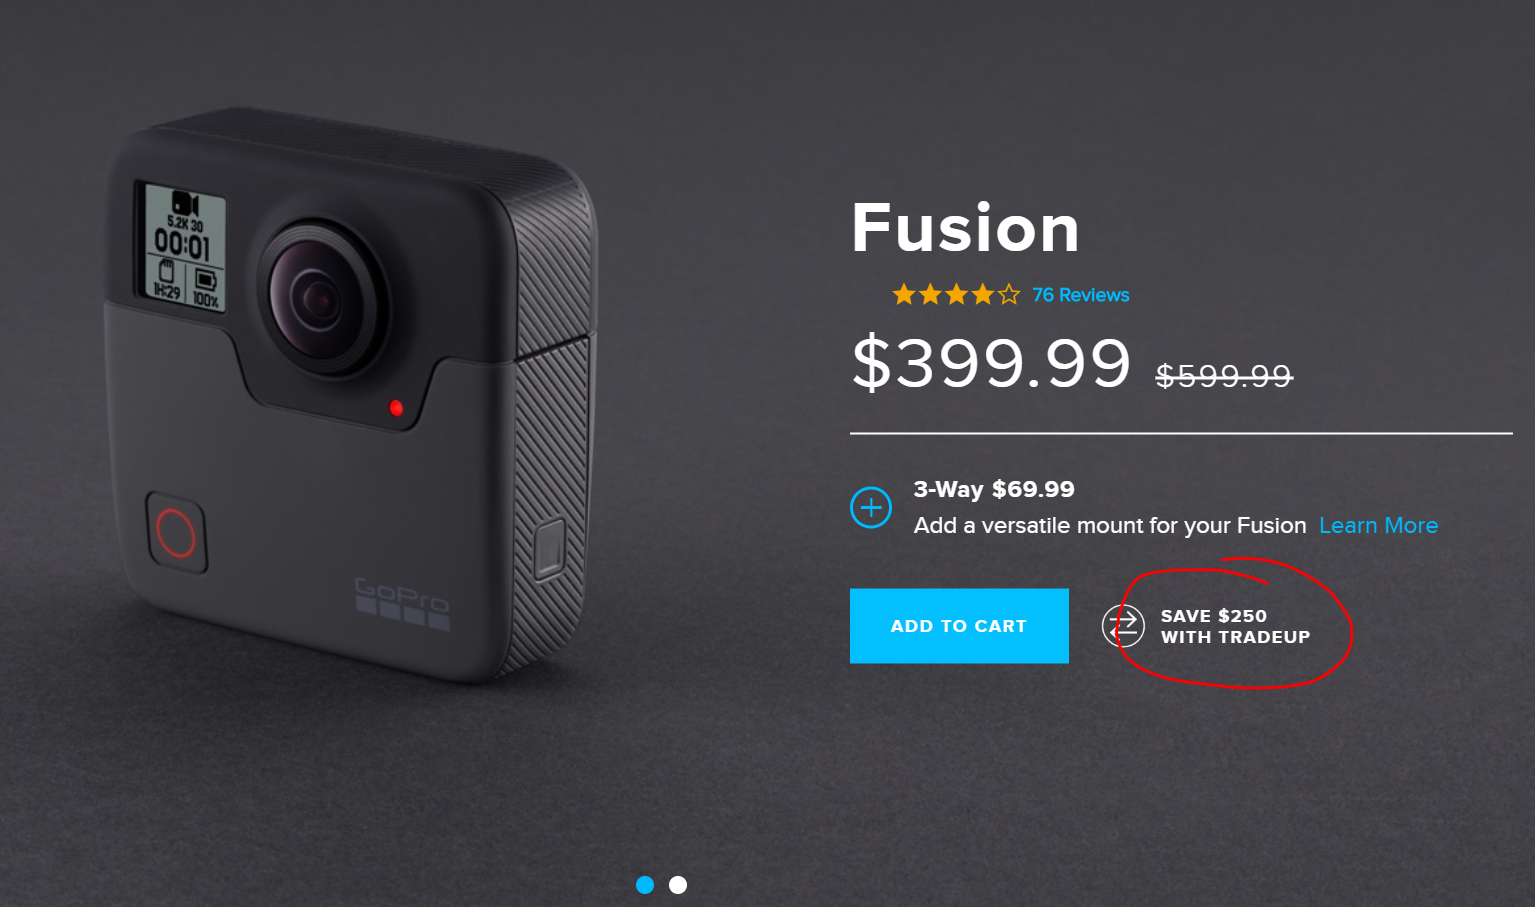 GoPro+Fusion+Pricing+TradeUp+Deal+Ripoff+Scam